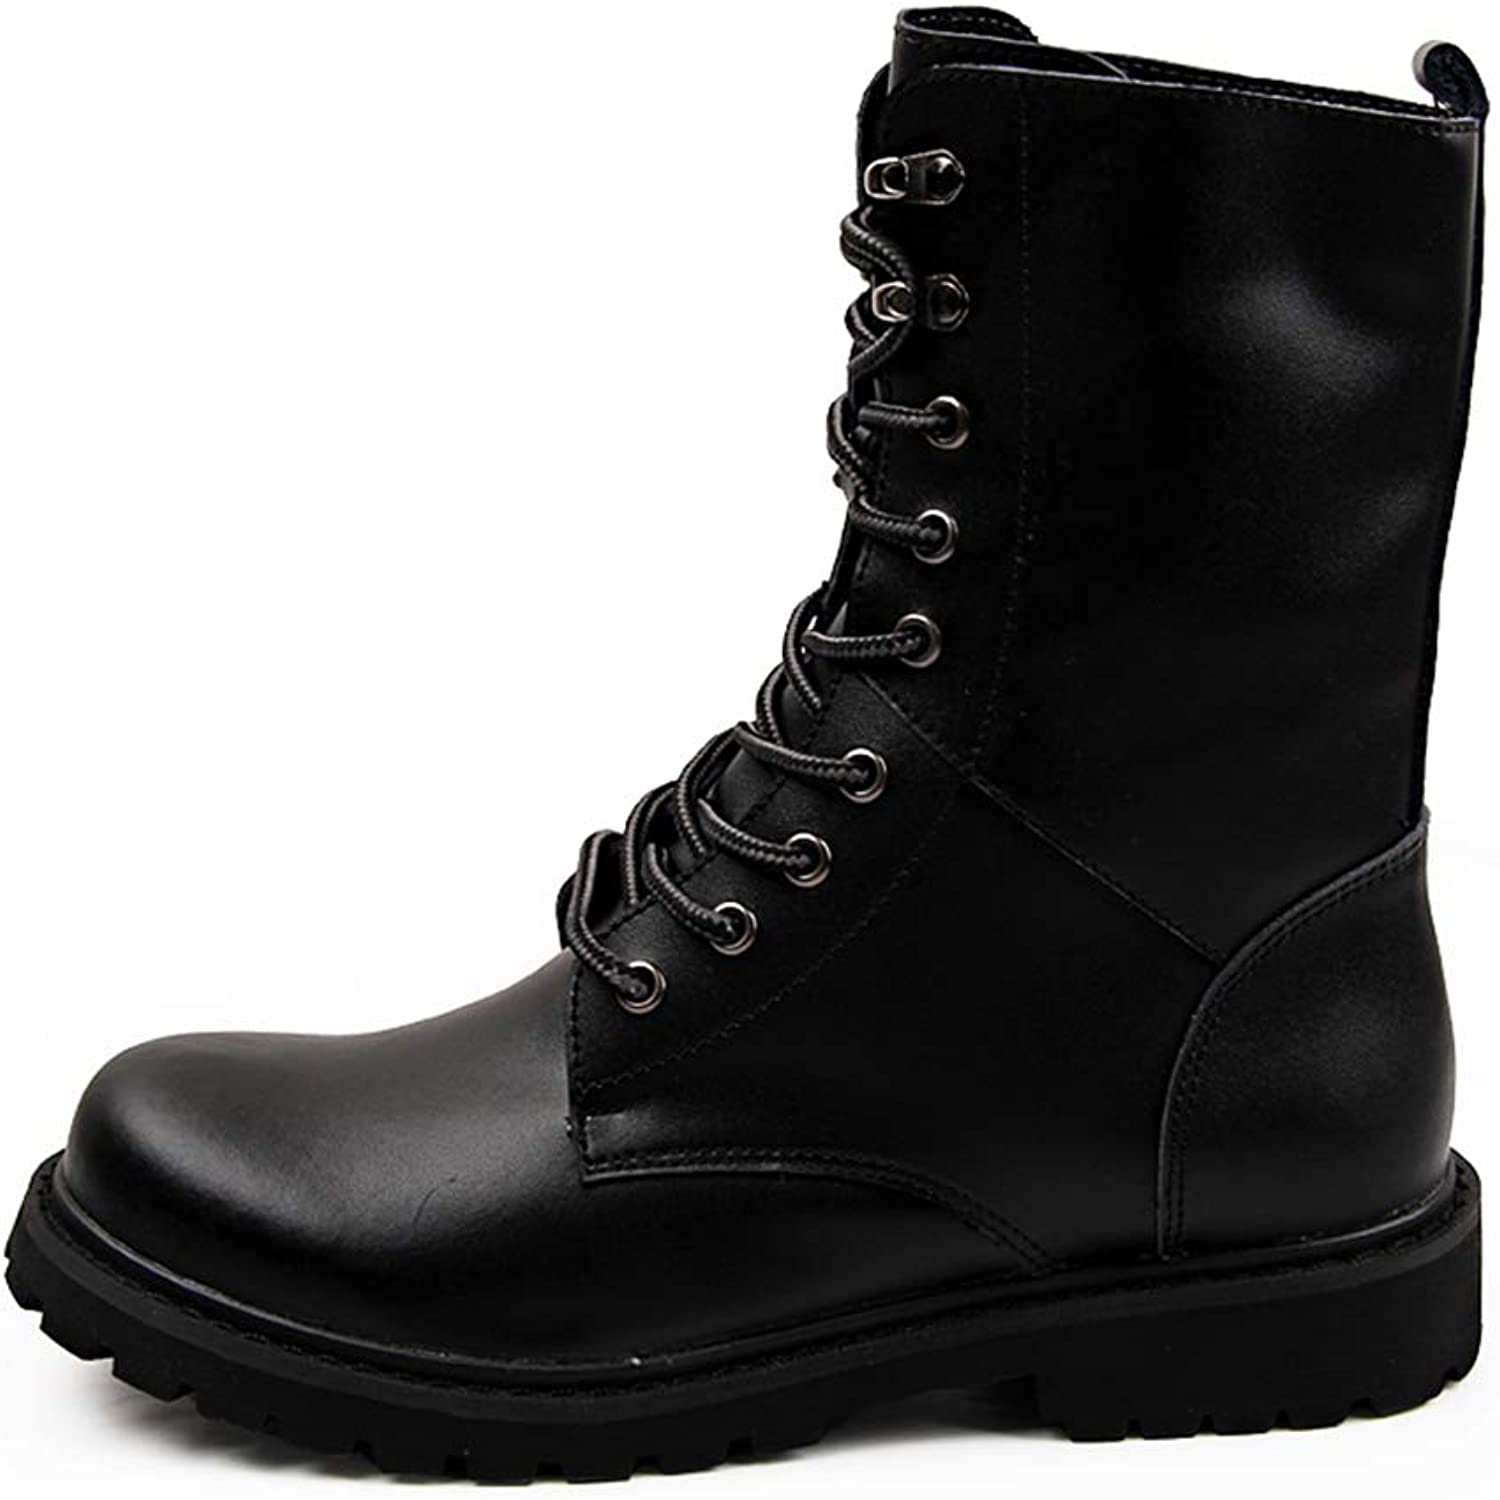 BND-SHOES ,Men's Premium Leather Retro Boots Waterproof Keep Feet Dry Adding Cotton Suitable for Winter Durable,Stand Wear and Tear (color   Cotton Black, Size   9.5 UK)